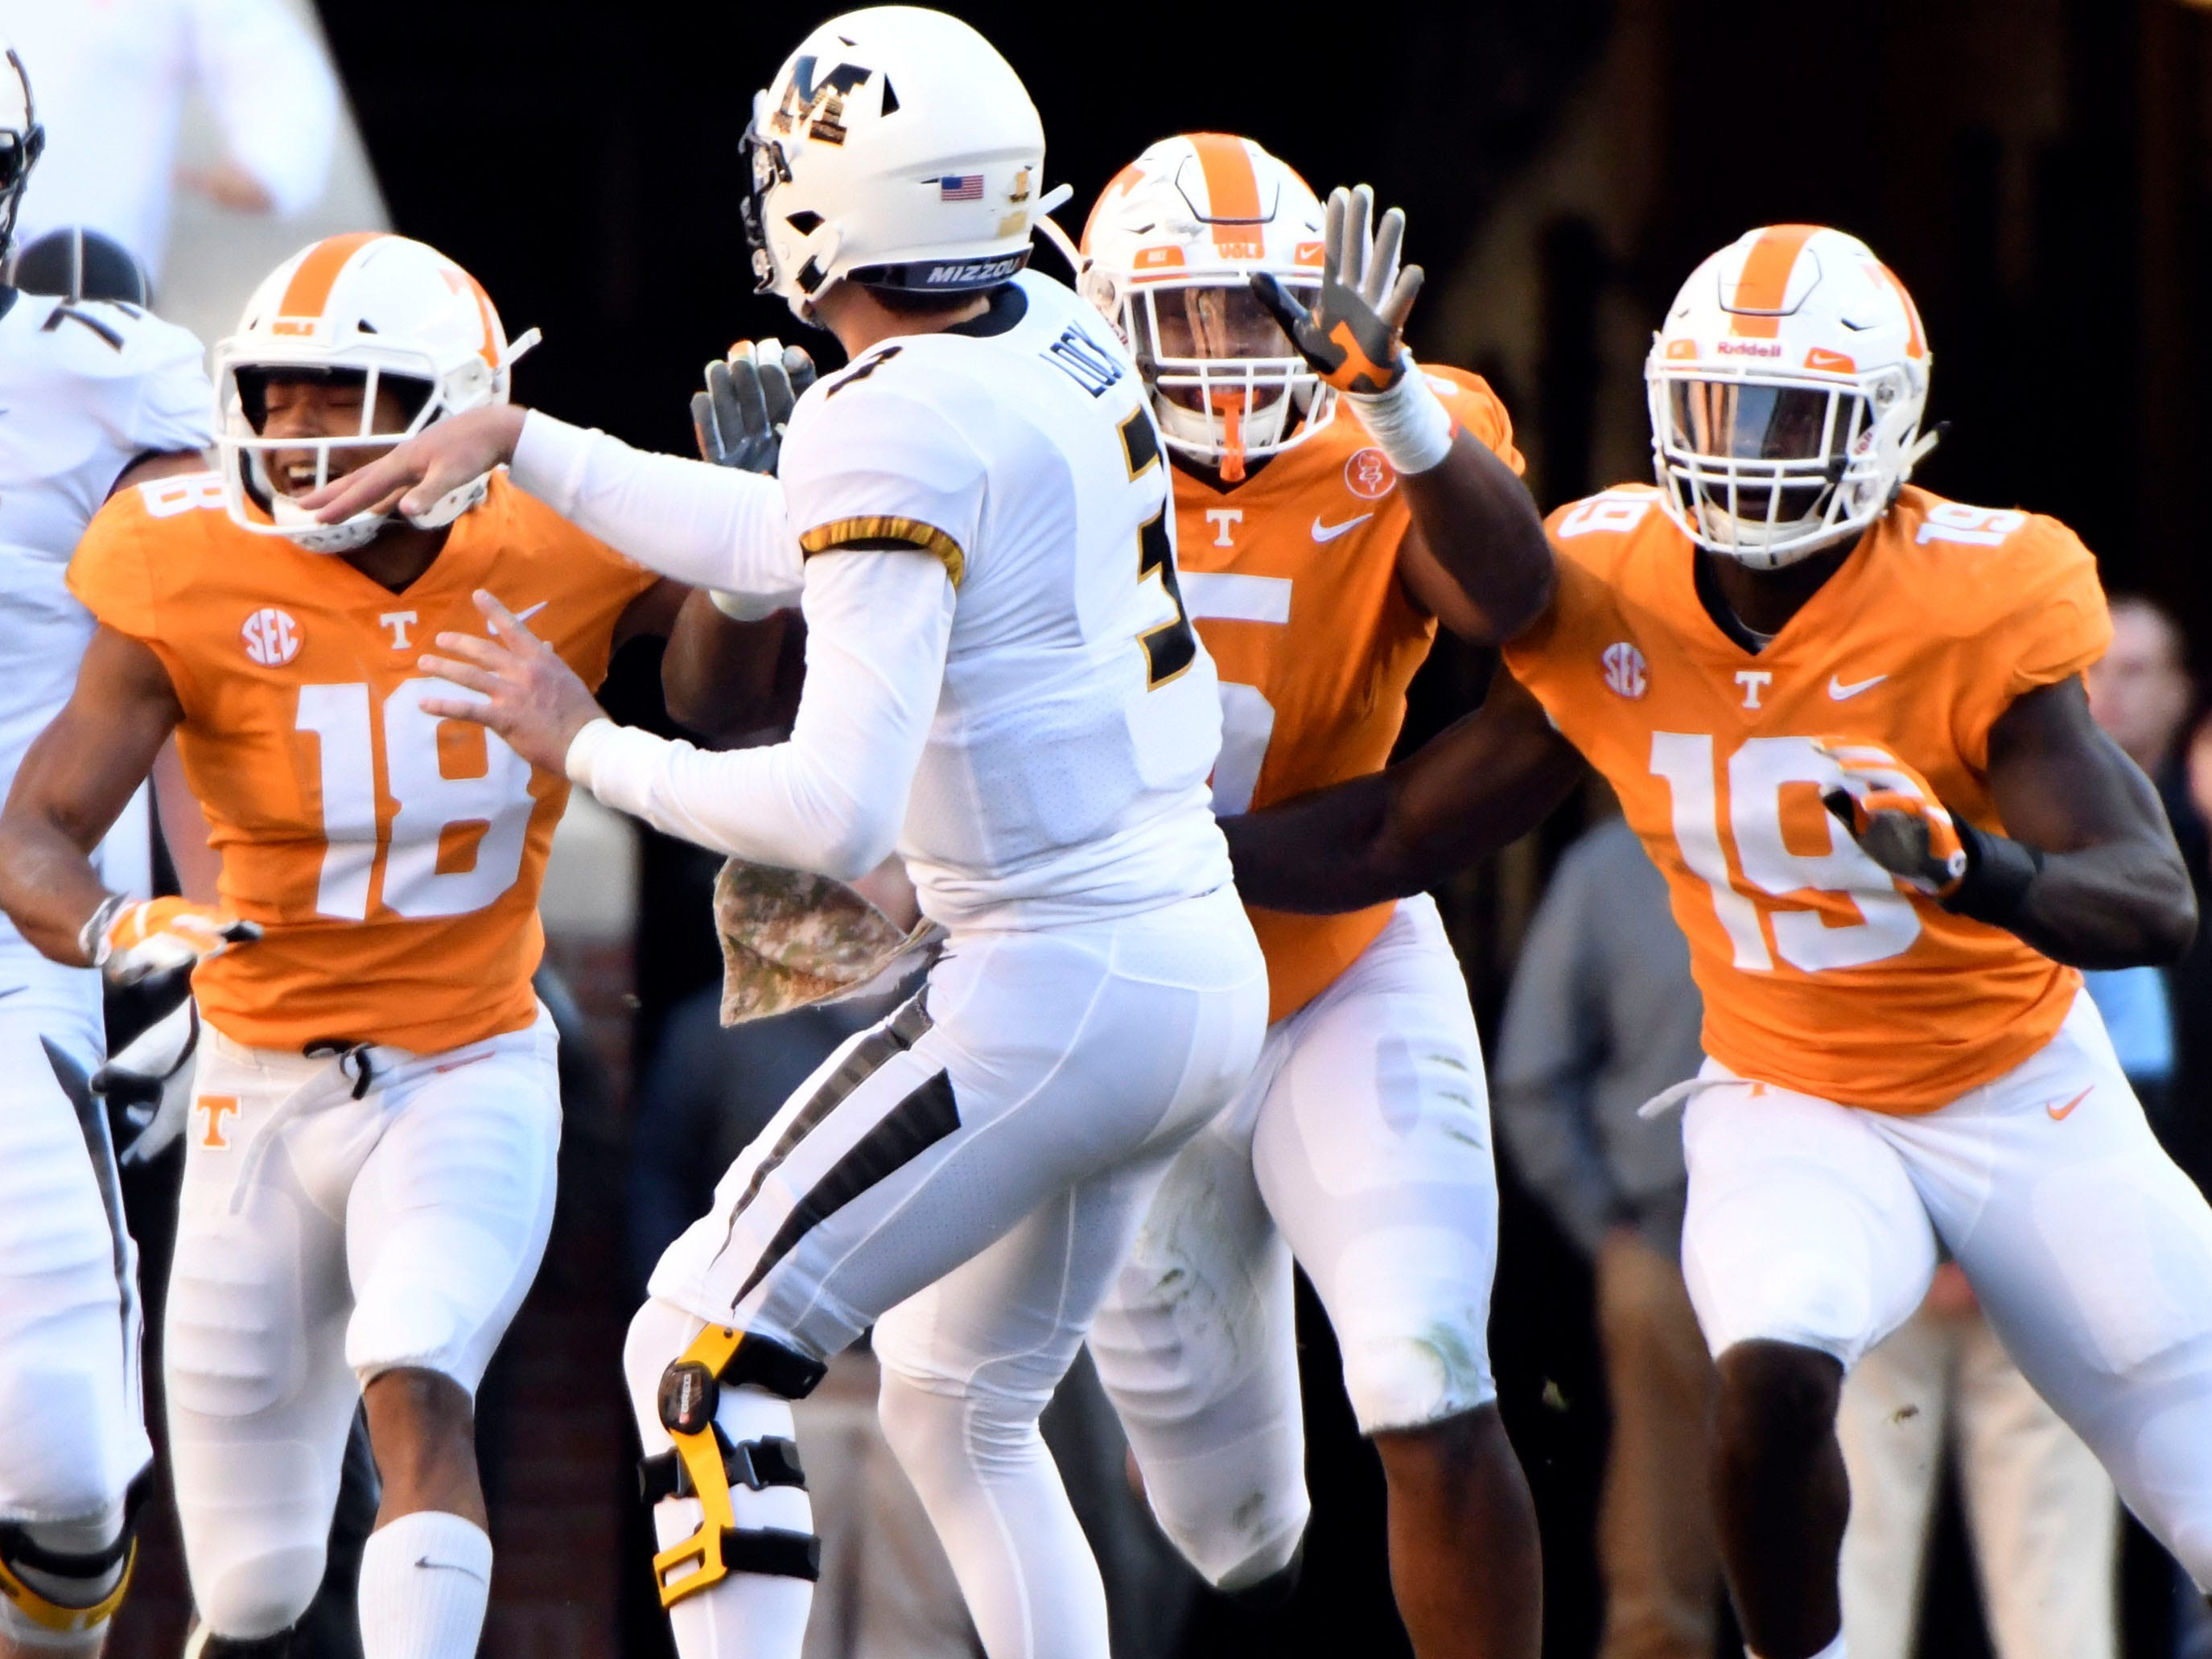 Missouri quarterback Drew Lock (3) releases the ball as he is approached by Tennessee defensive backs Nigel Warrior (18), Alontae Taylor (6), and linebacker Darrell Taylor (19)   during the Tennessee and Missouri football game on Saturday, November 17, 2018.